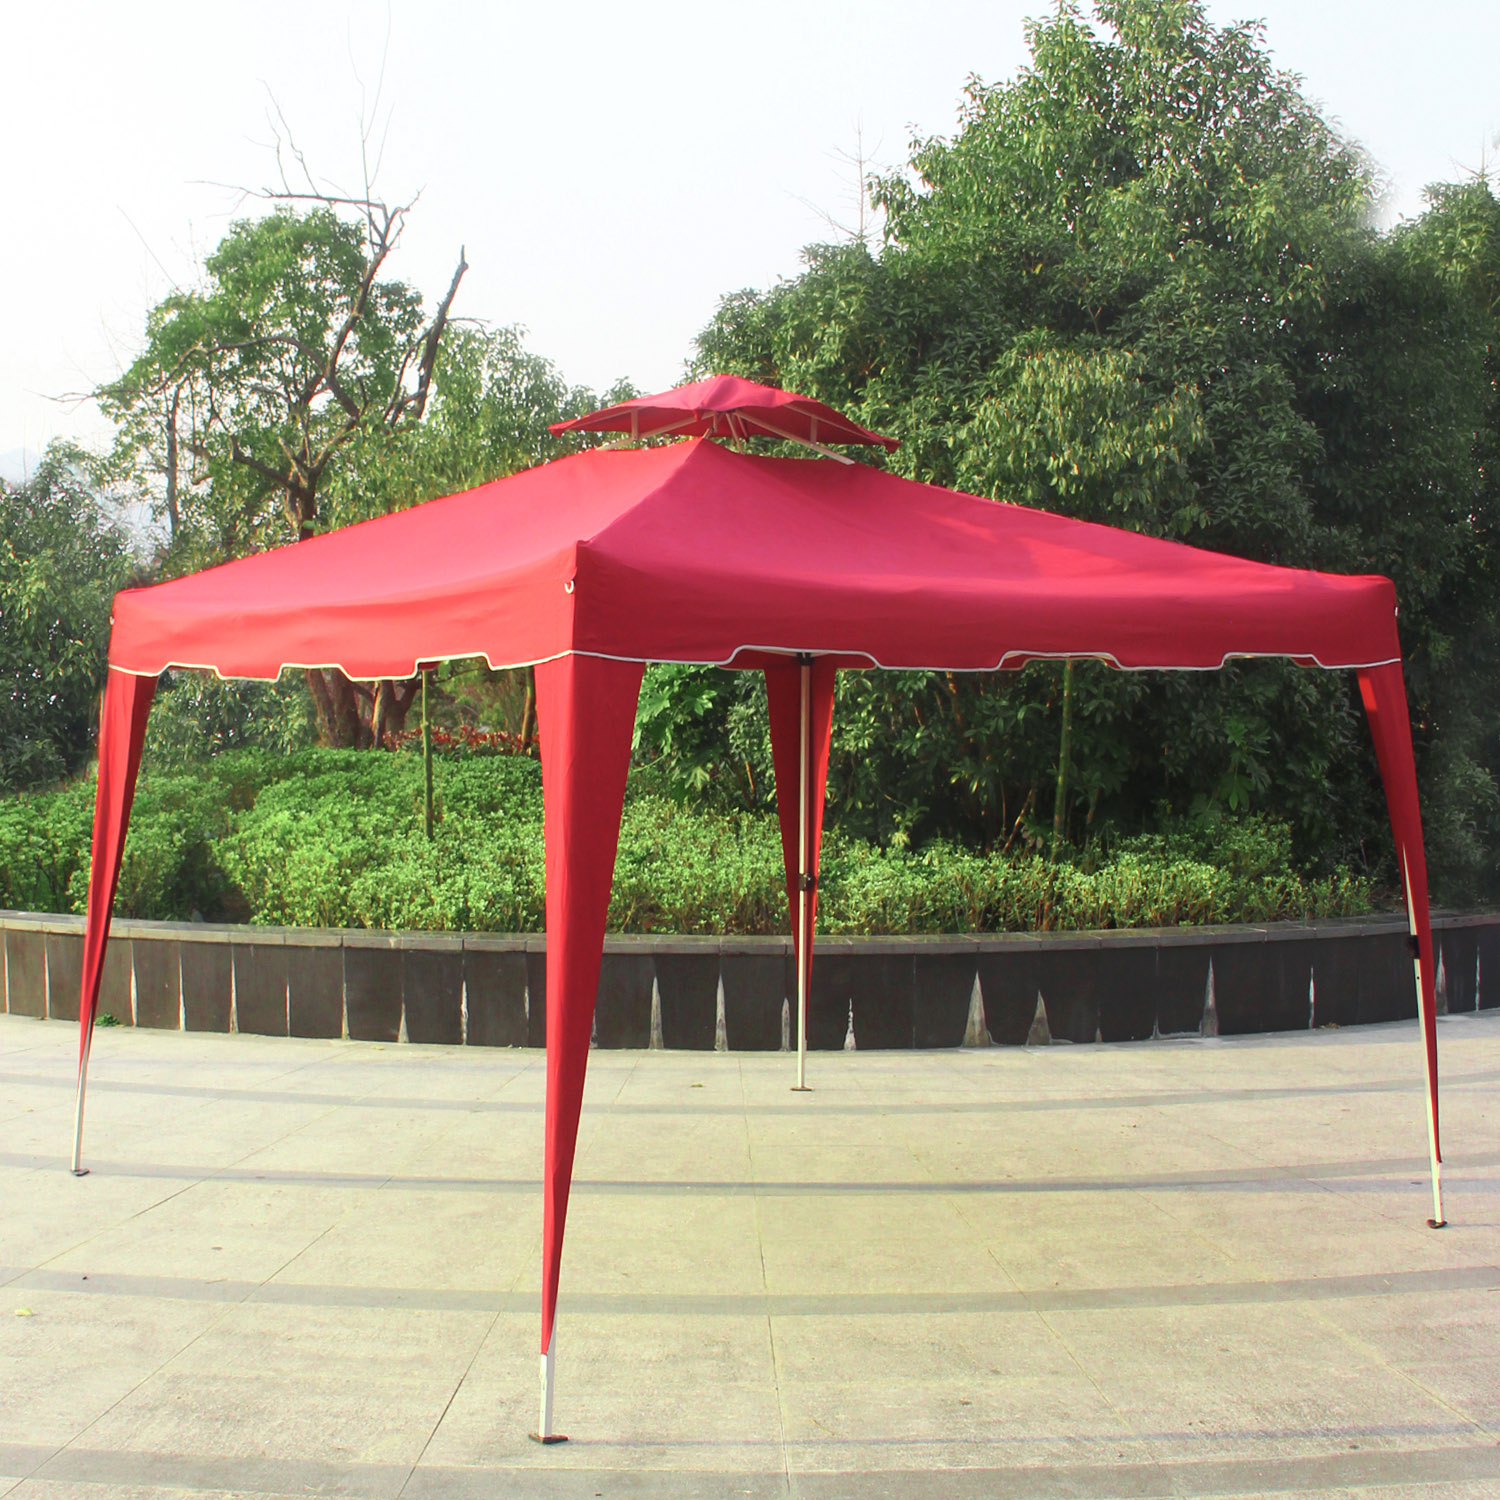 Cloud Mountain 10u0027 x 10u0027 Garden Pop Up Canopy Gazebo Patio Outdoor Double Roof & Cloud Mountain 10u0027 x 10u0027 Garden Pop Up Canopy Gazebo Patio Outdoor ...